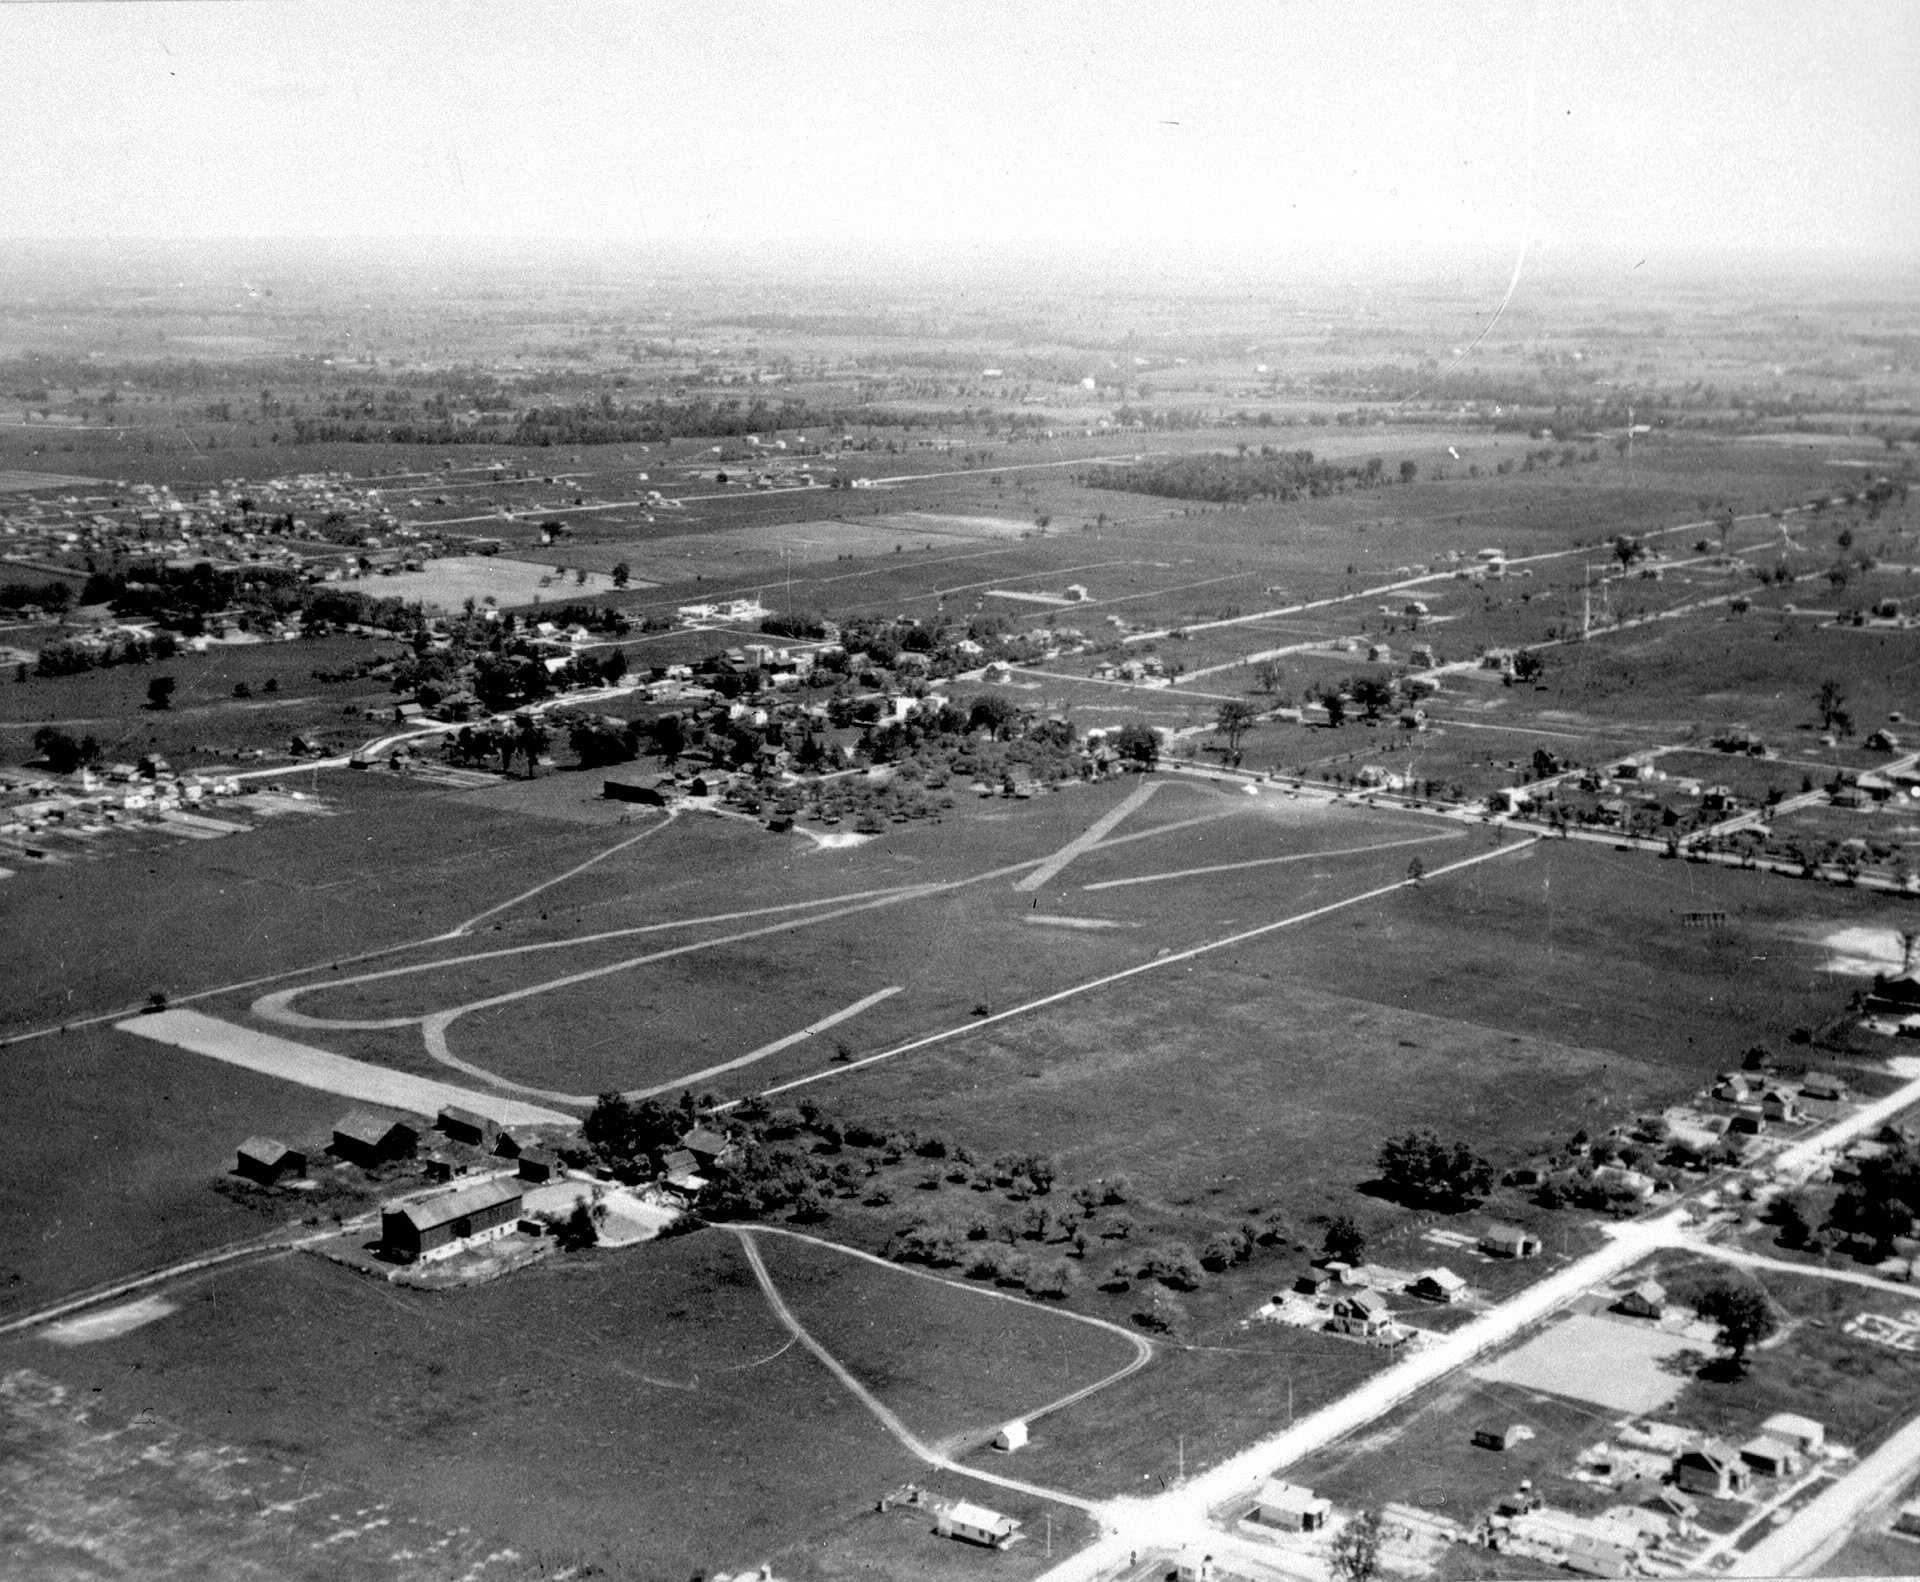 Aerial view of land east and west of Yonge Street between Burndale Avenue and north of Finch Avenue, North York, 1927 (photo: Toronto Public Library NYHS00373, gift of North York Historical Society)